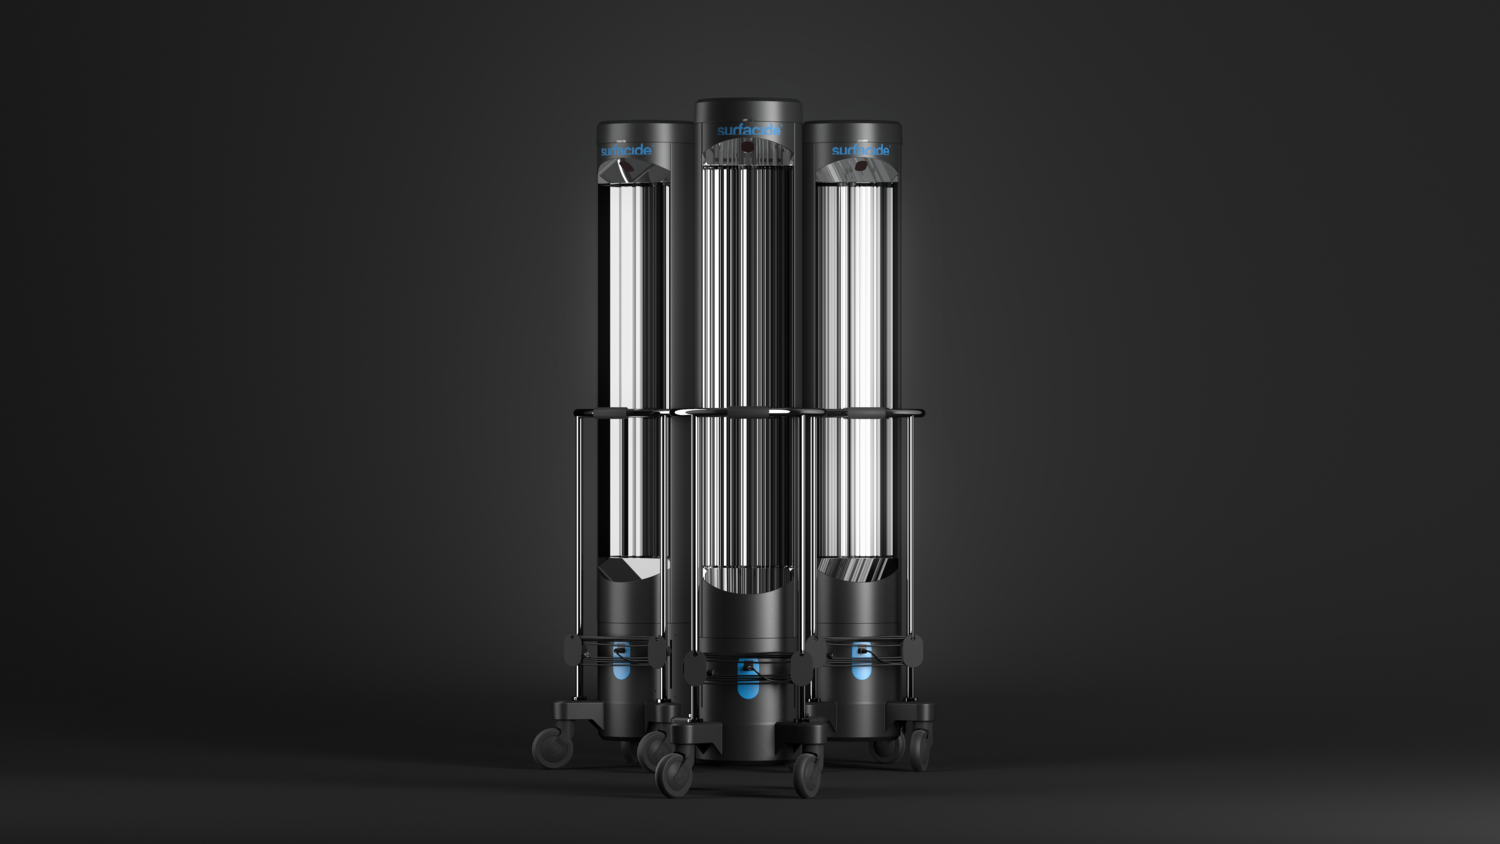 Surfacide UV-C disinfection system